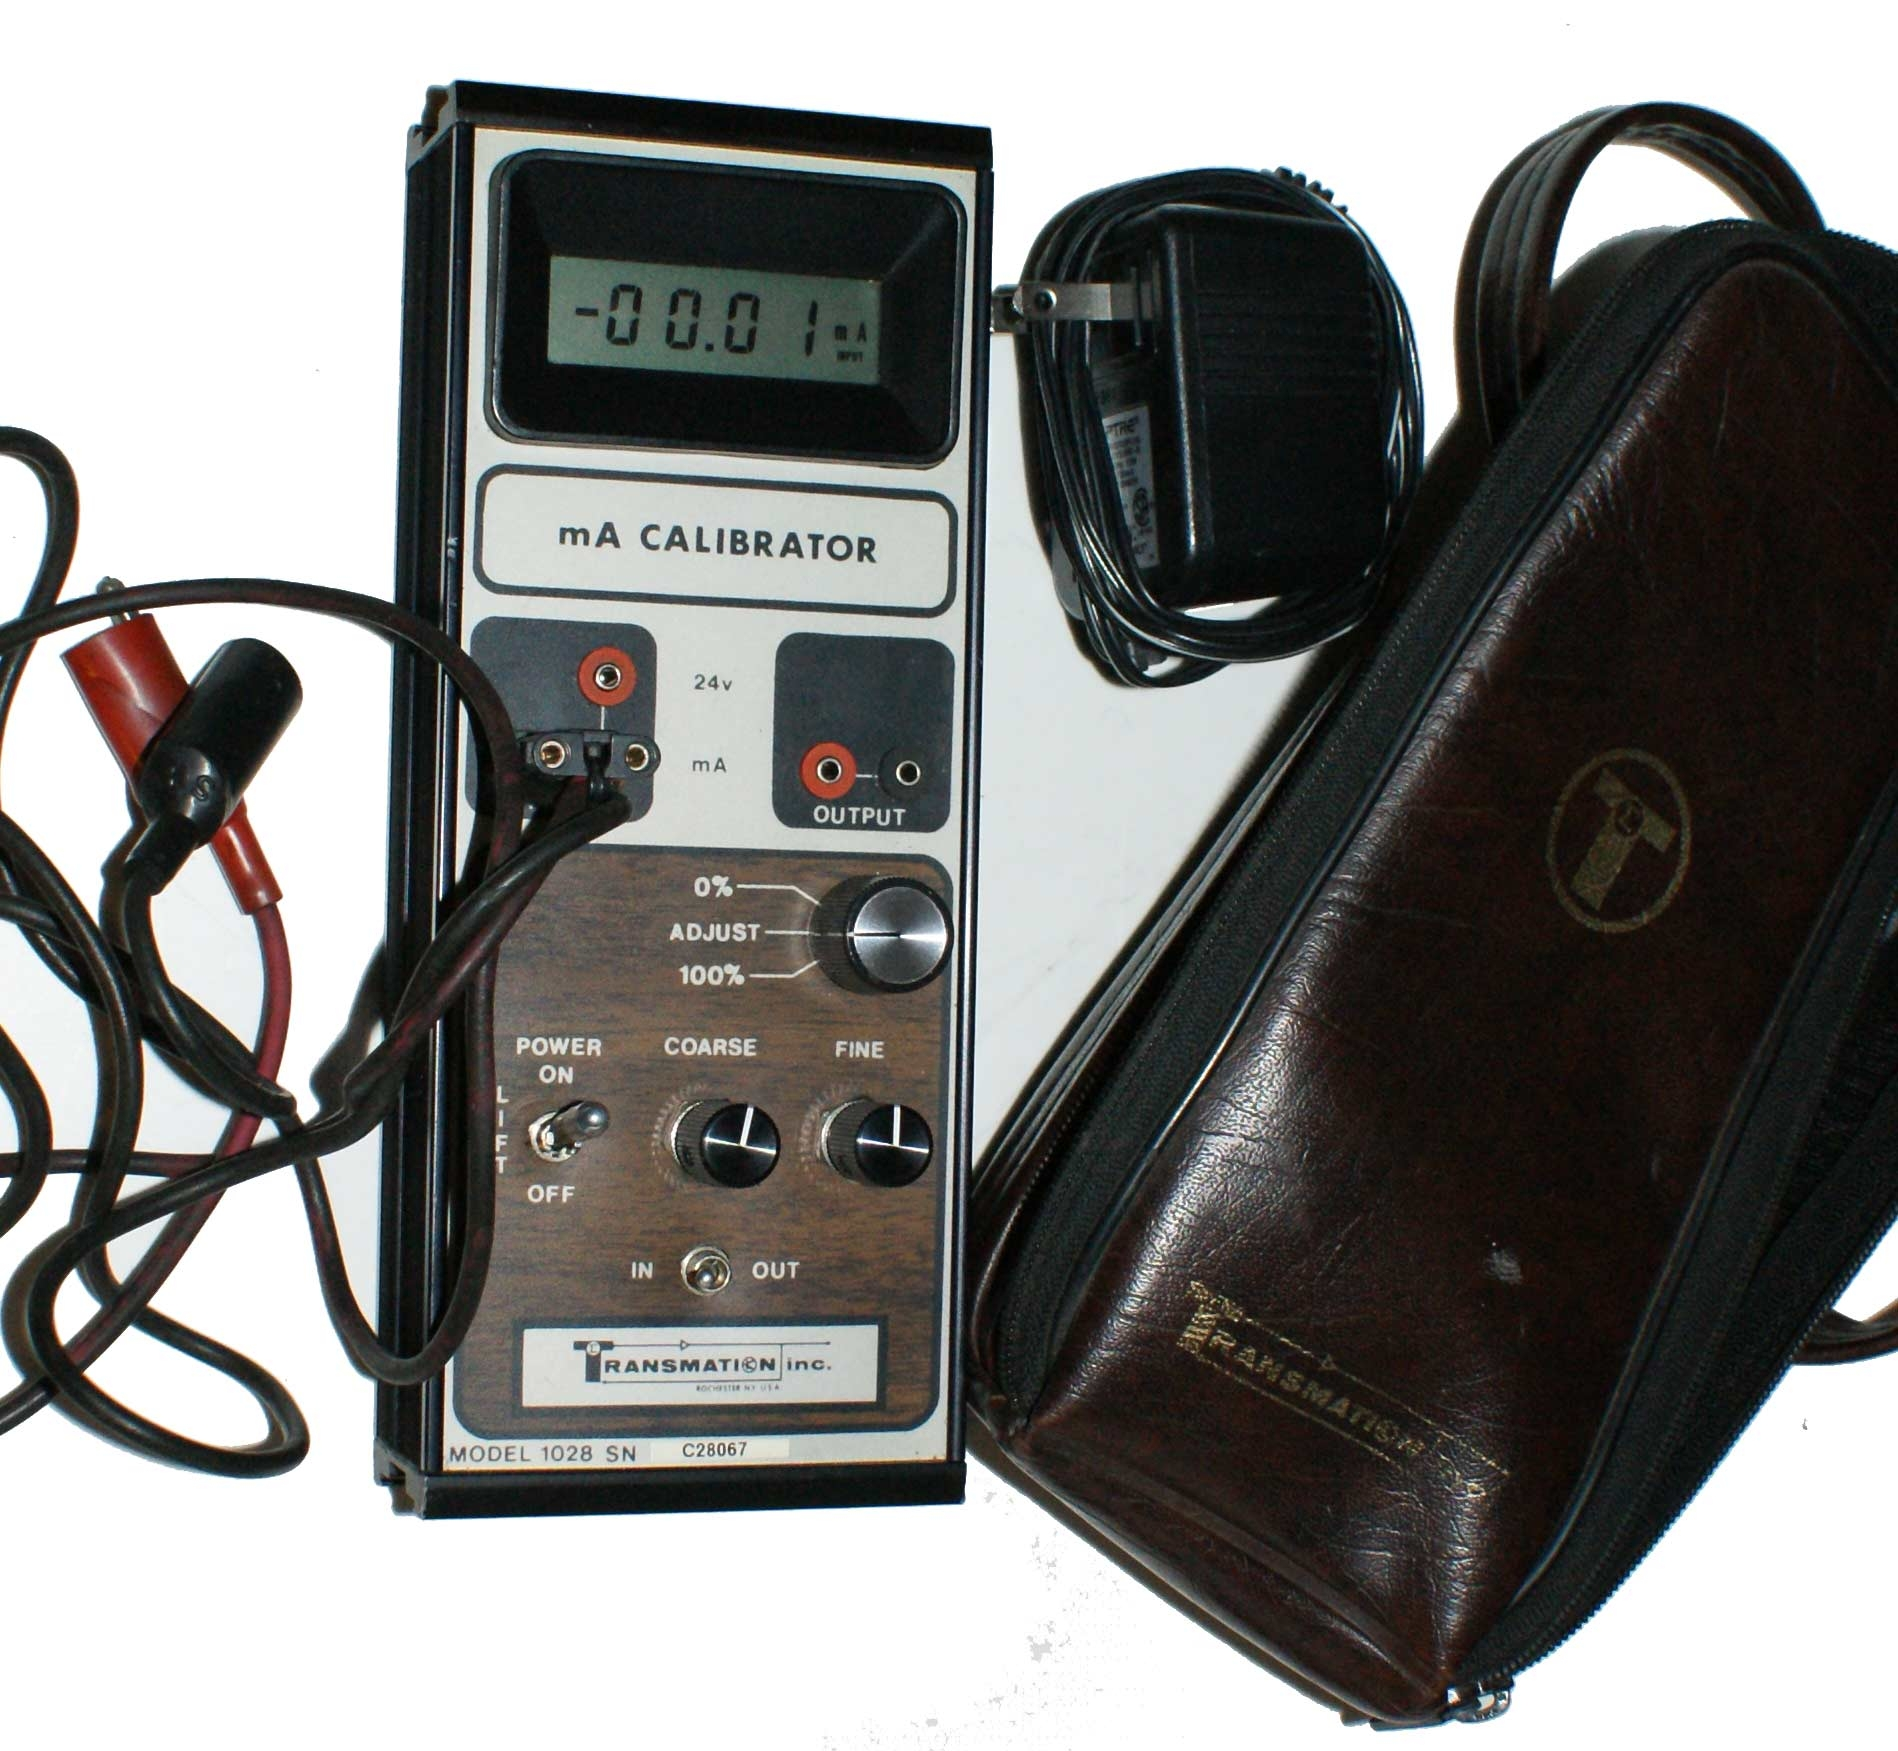 Transmation 1028 mA Calibrator